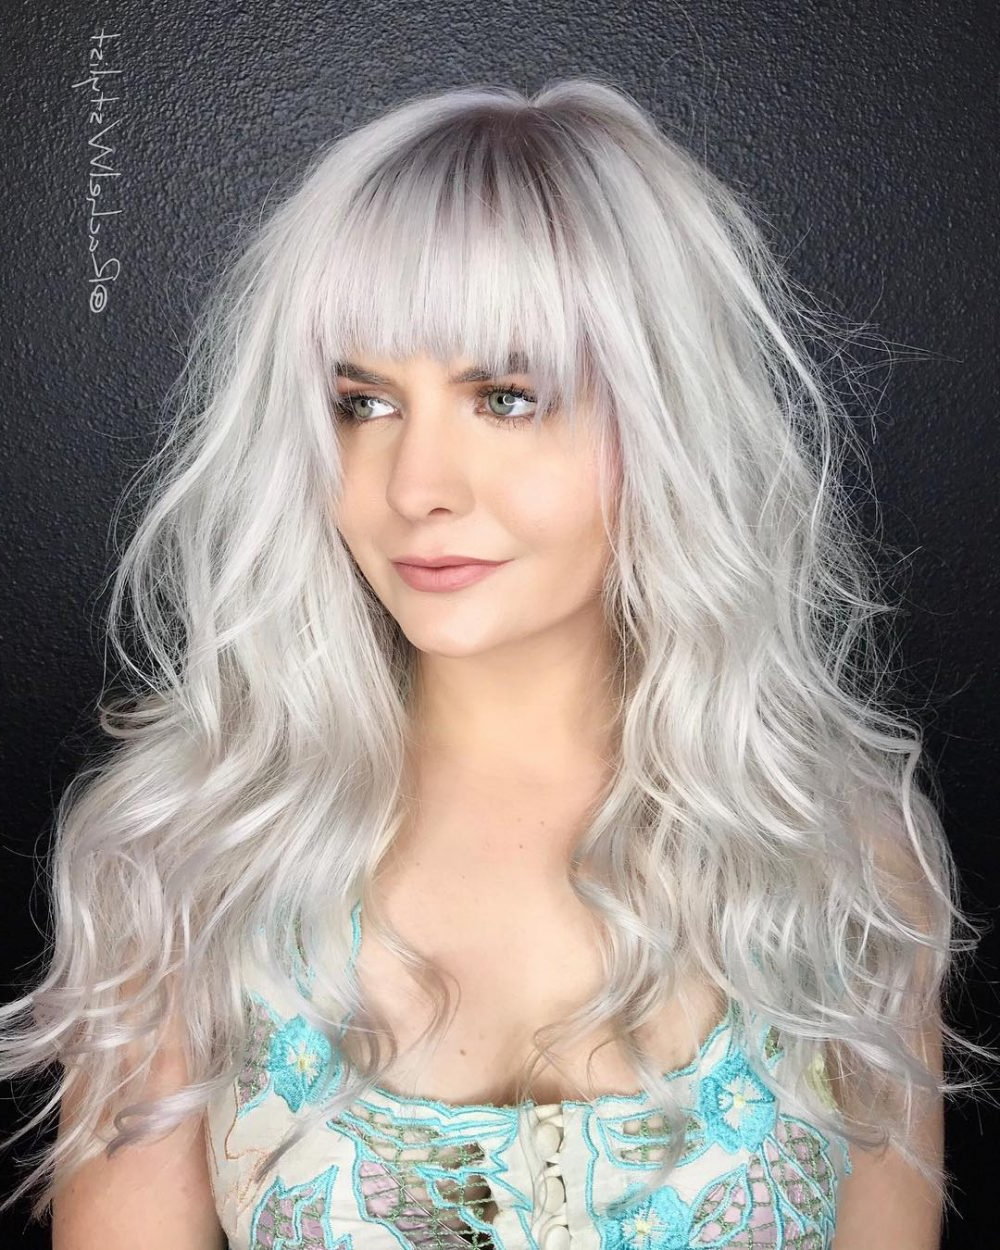 29 Most Flattering Hairstyles For Round Faces Of 2018 Pertaining To Disheveled Blonde Pixie Haircuts With Elongated Bangs (Gallery 12 of 20)